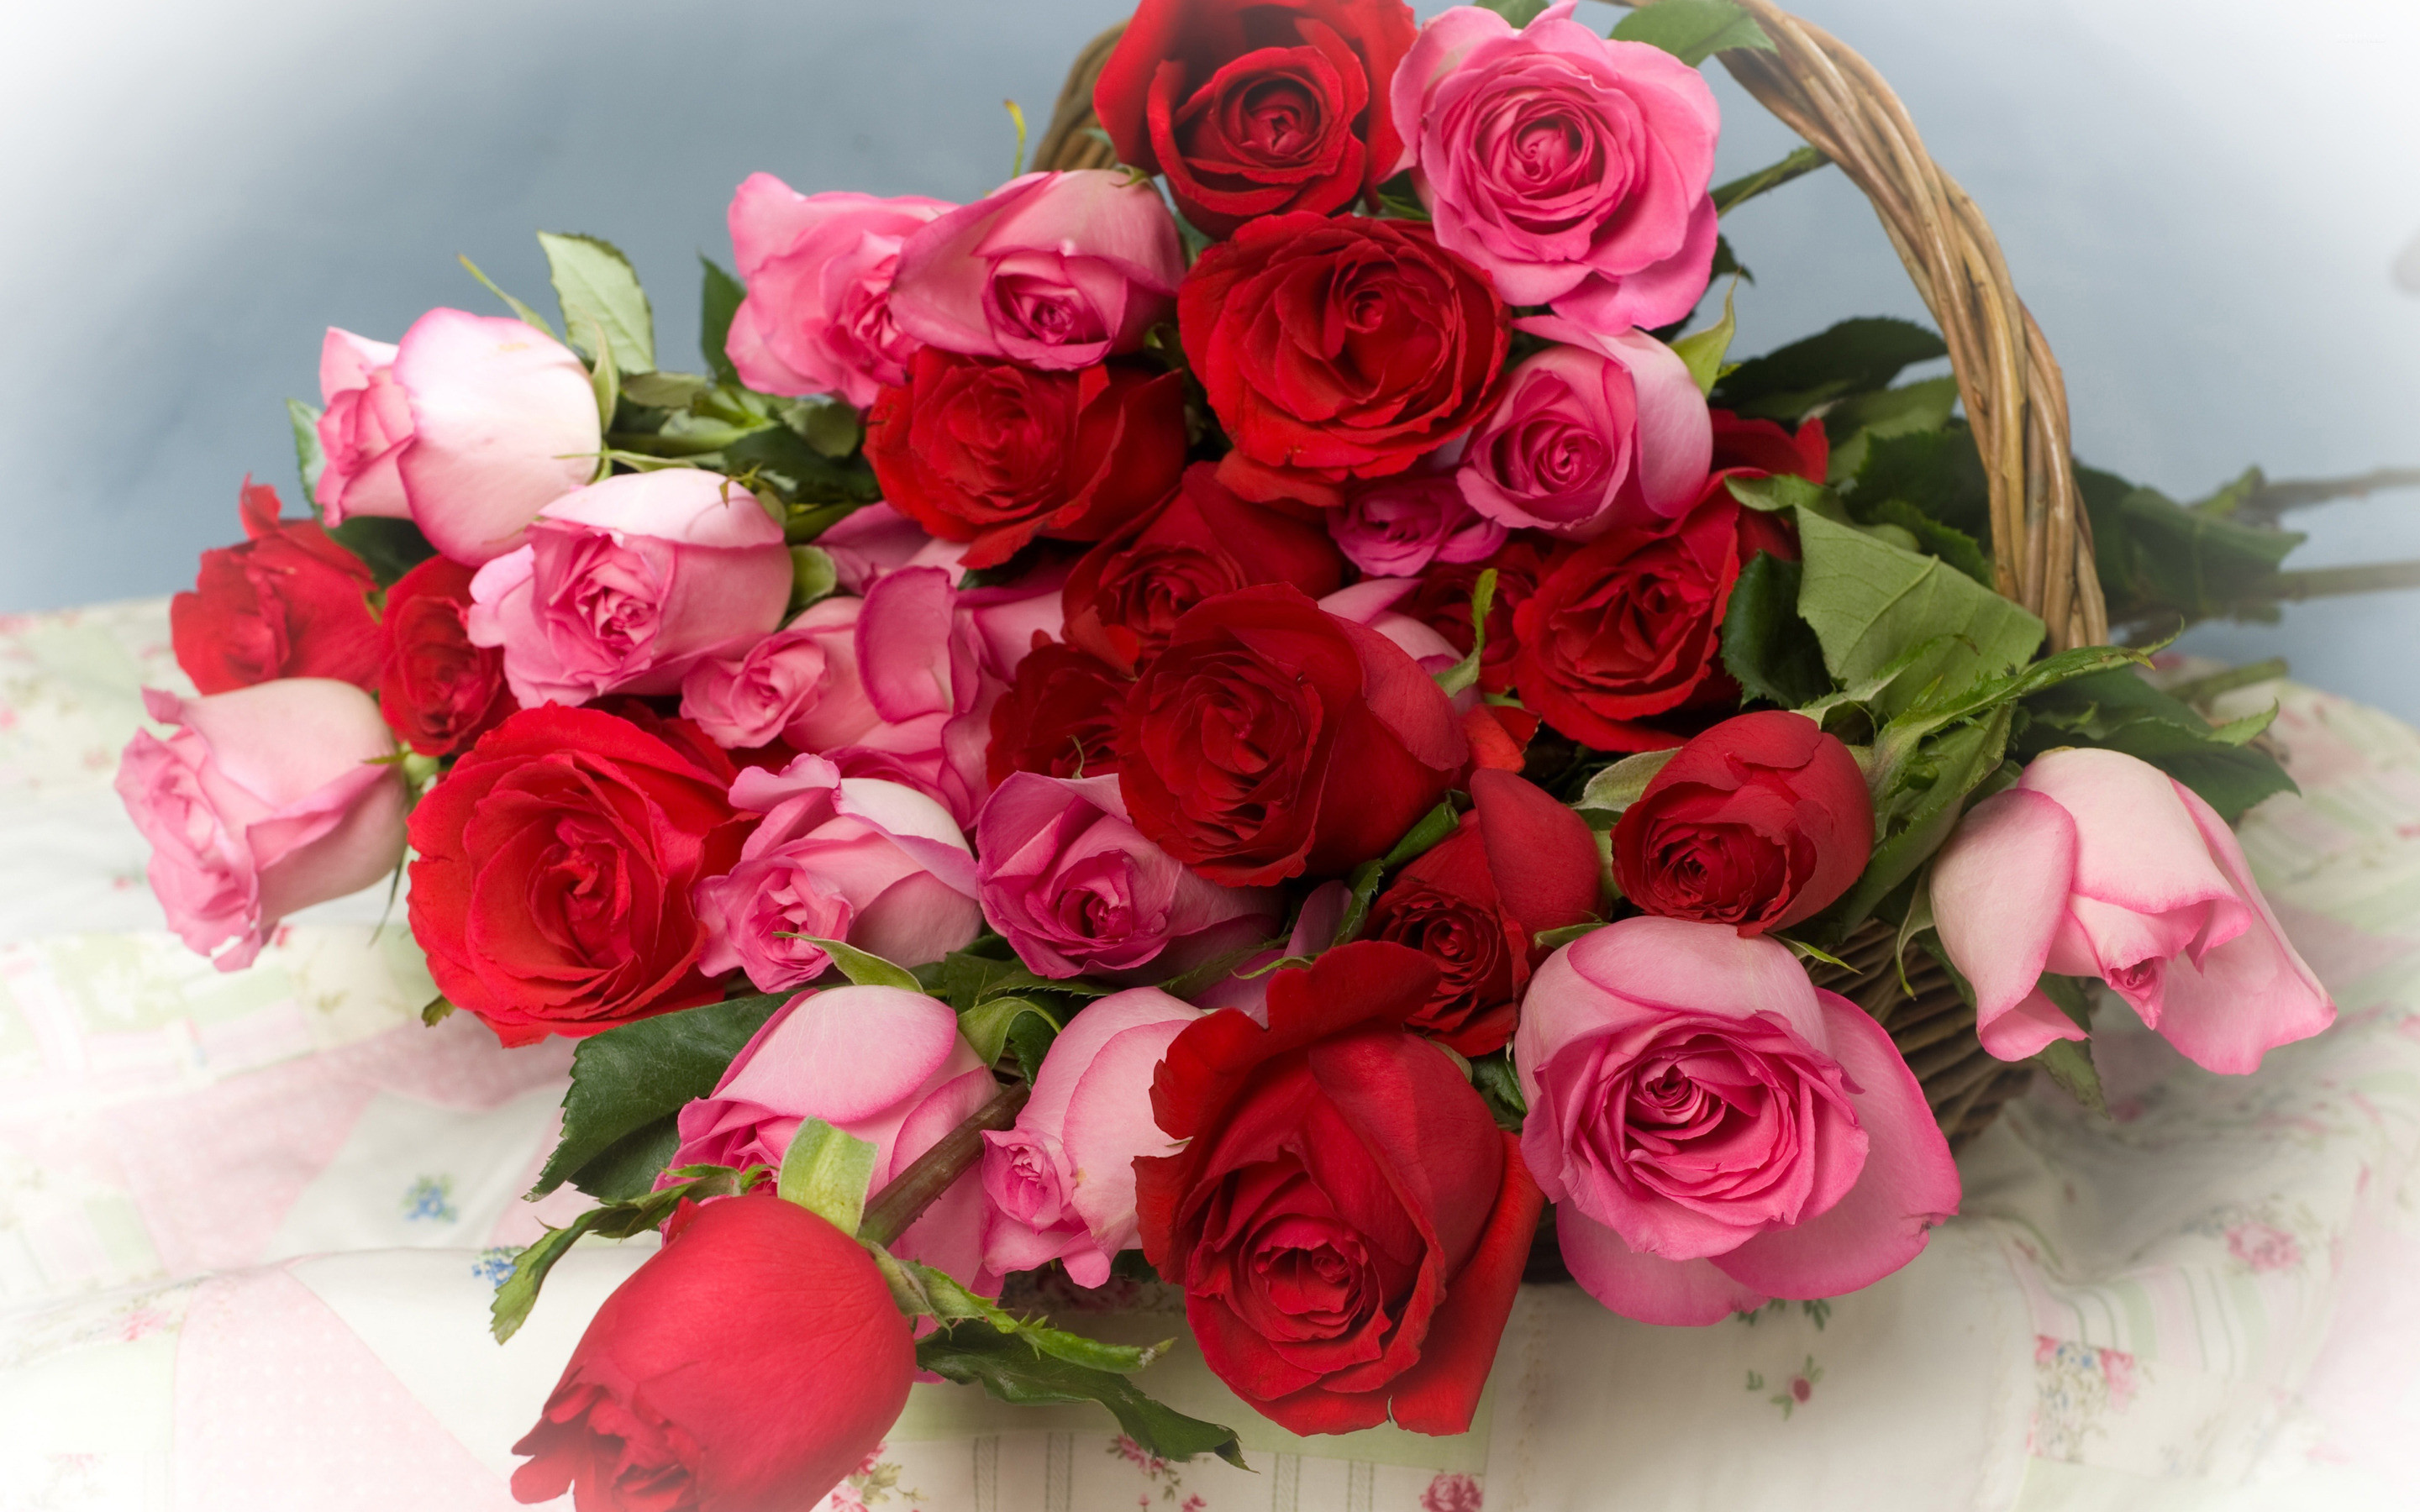 Res: 2880x1800, Pink and red roses in a basket wallpaper